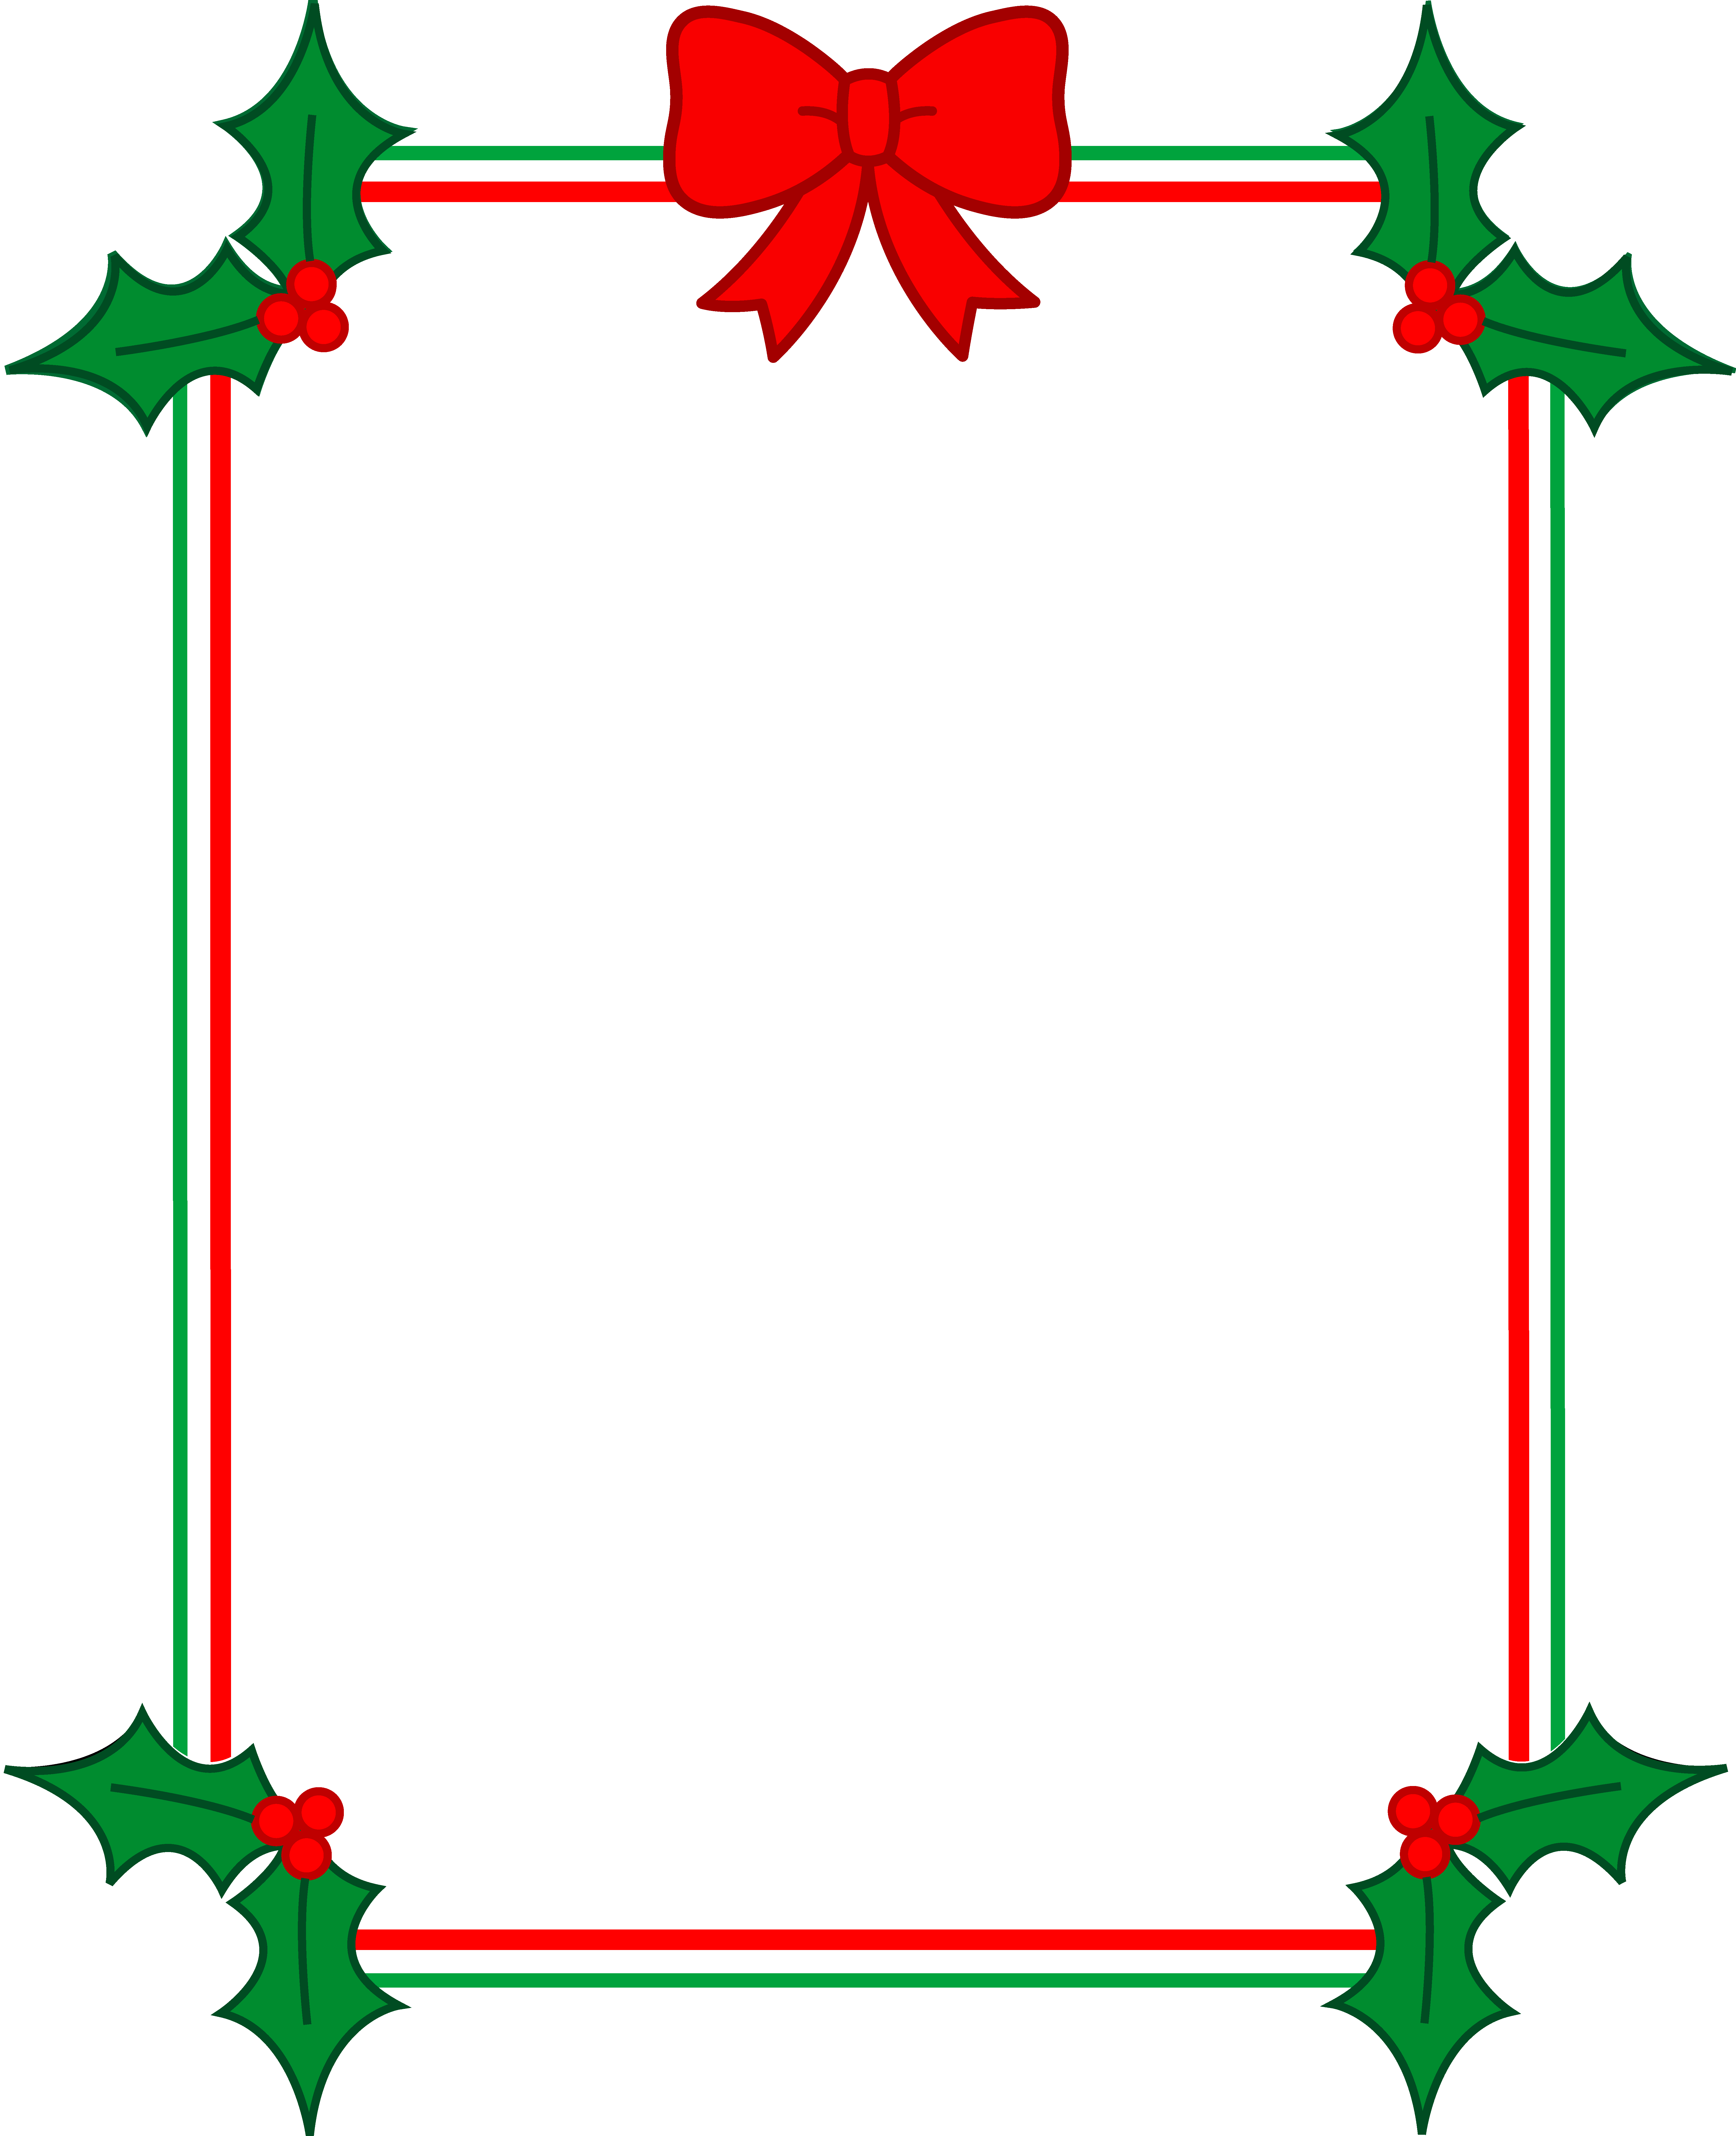 clip royalty free download Free christmas clipart borders. Border with holly and